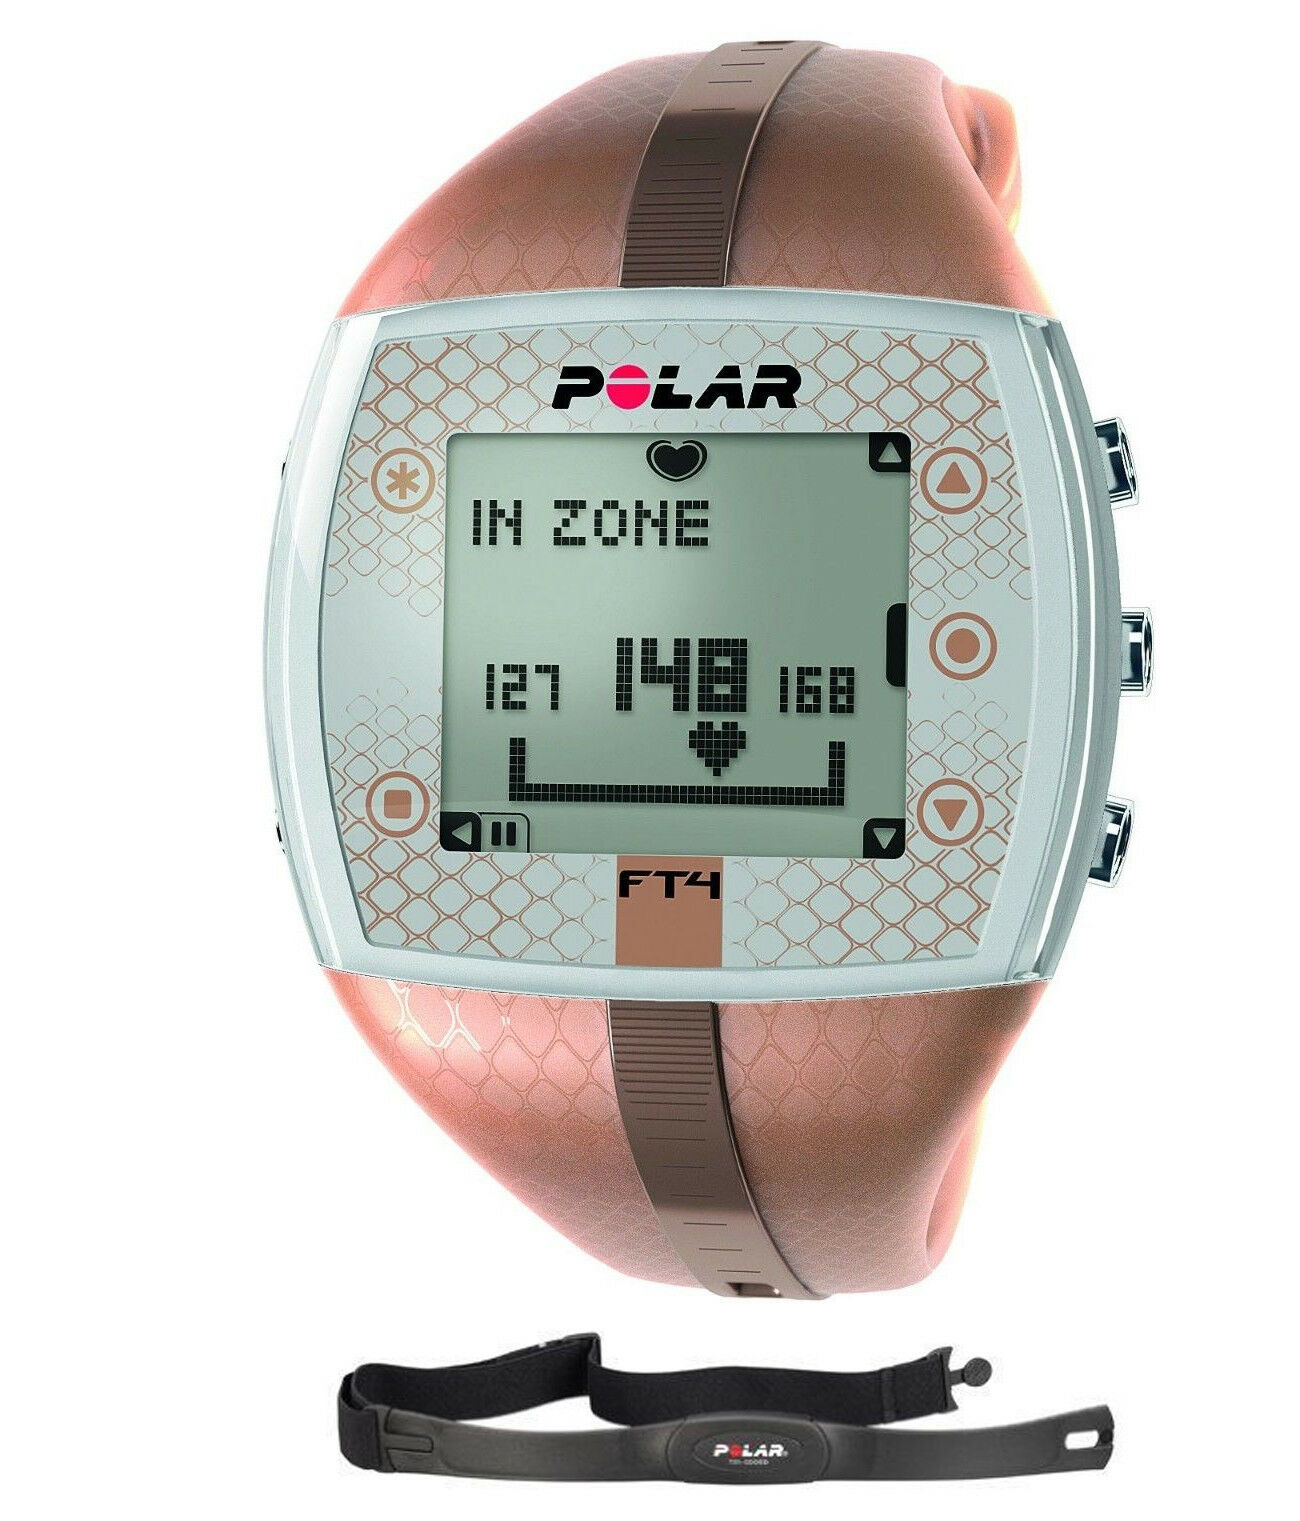 Braun Polar FT4 Heart Rate Monitor Sports Health Body Watch with Chest Strap